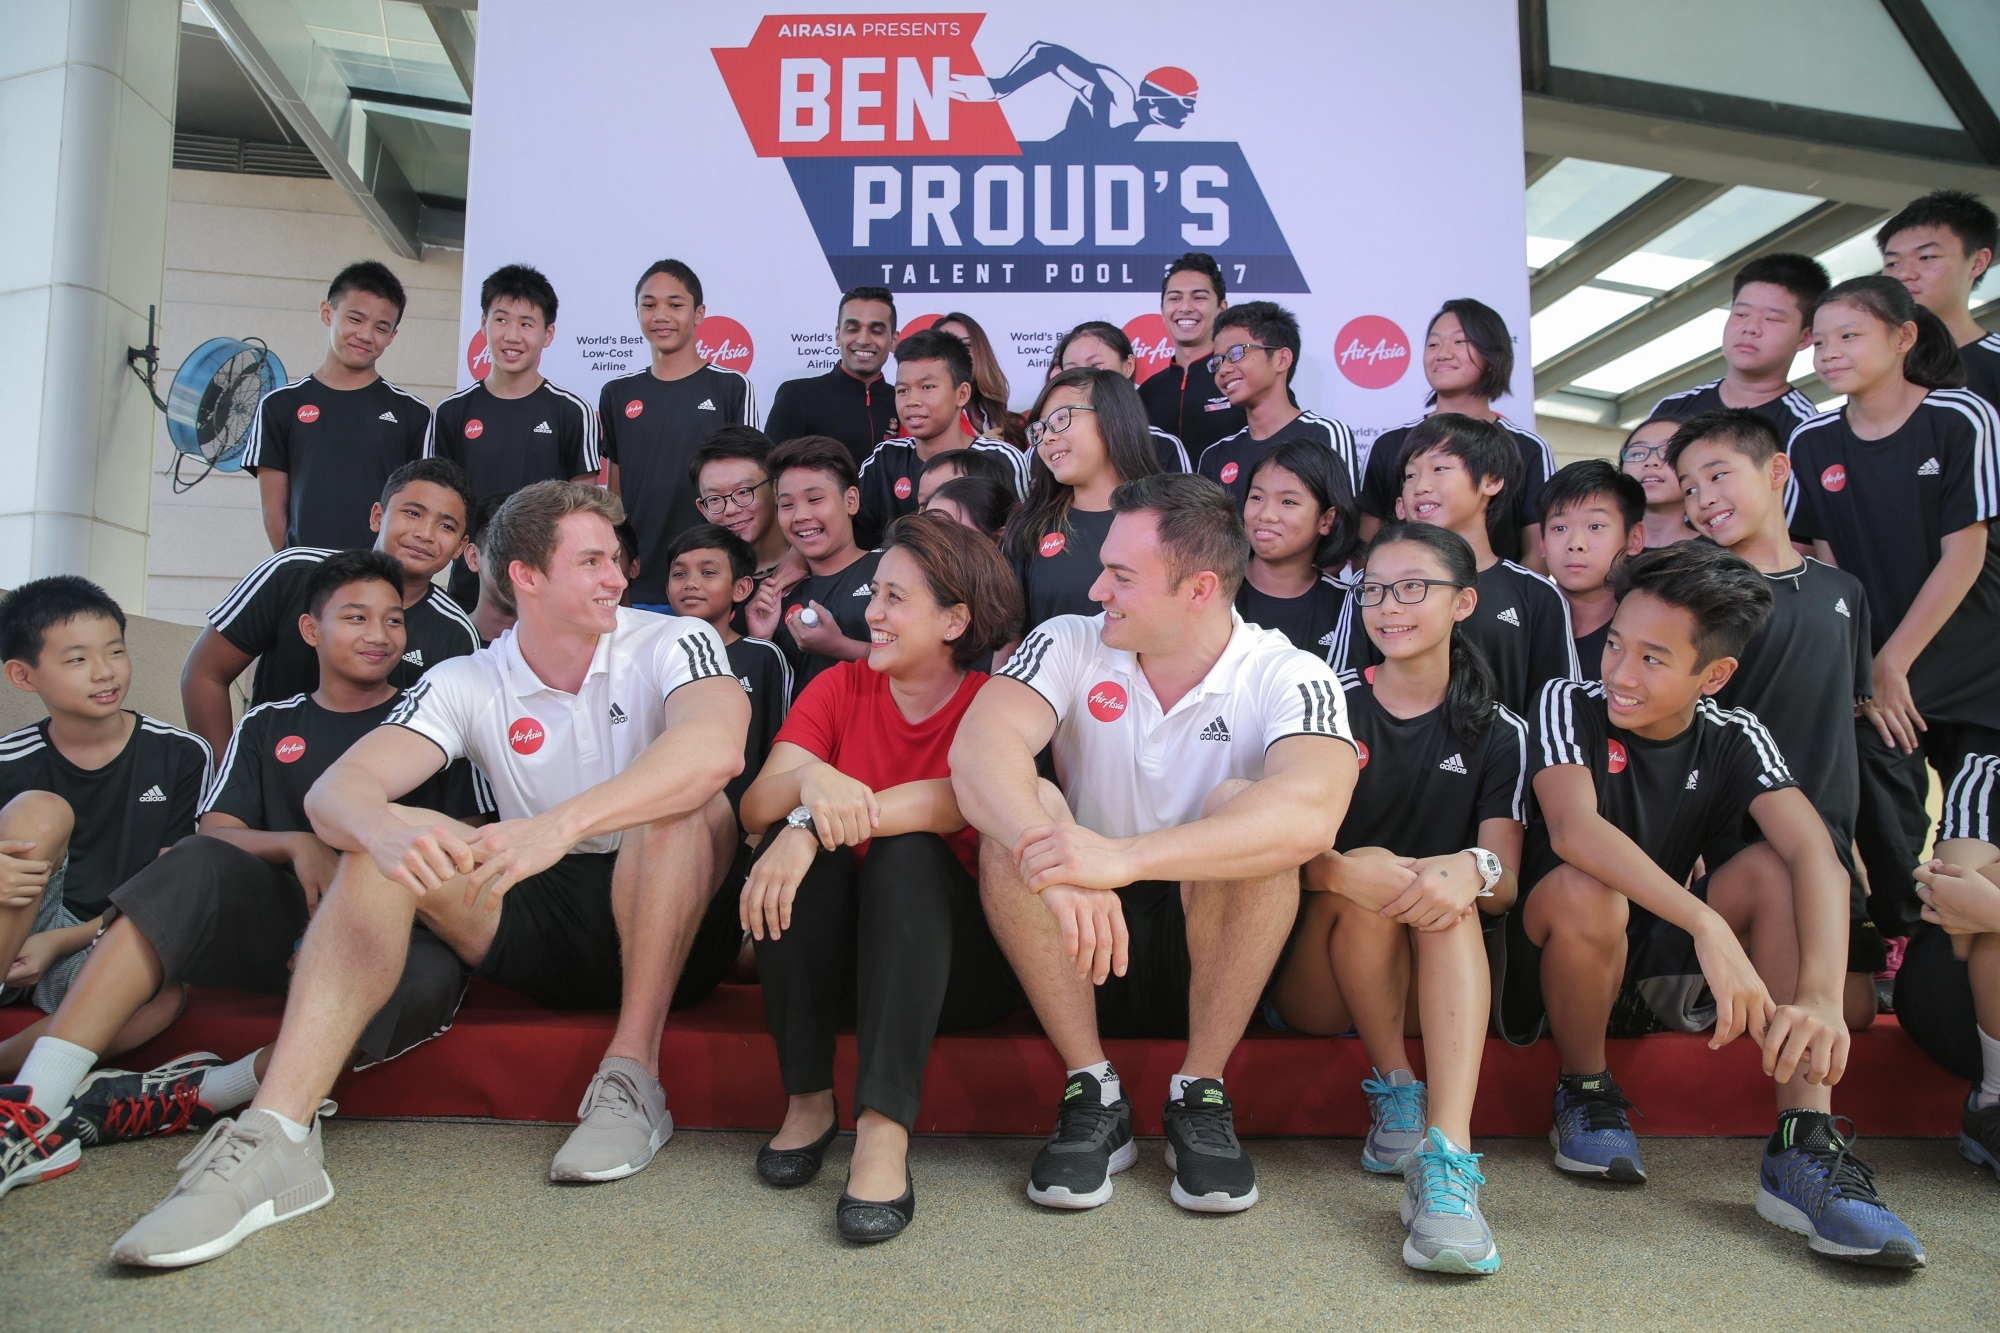 AirAsia partners with British Olympic swimmer Ben Proud.jpg